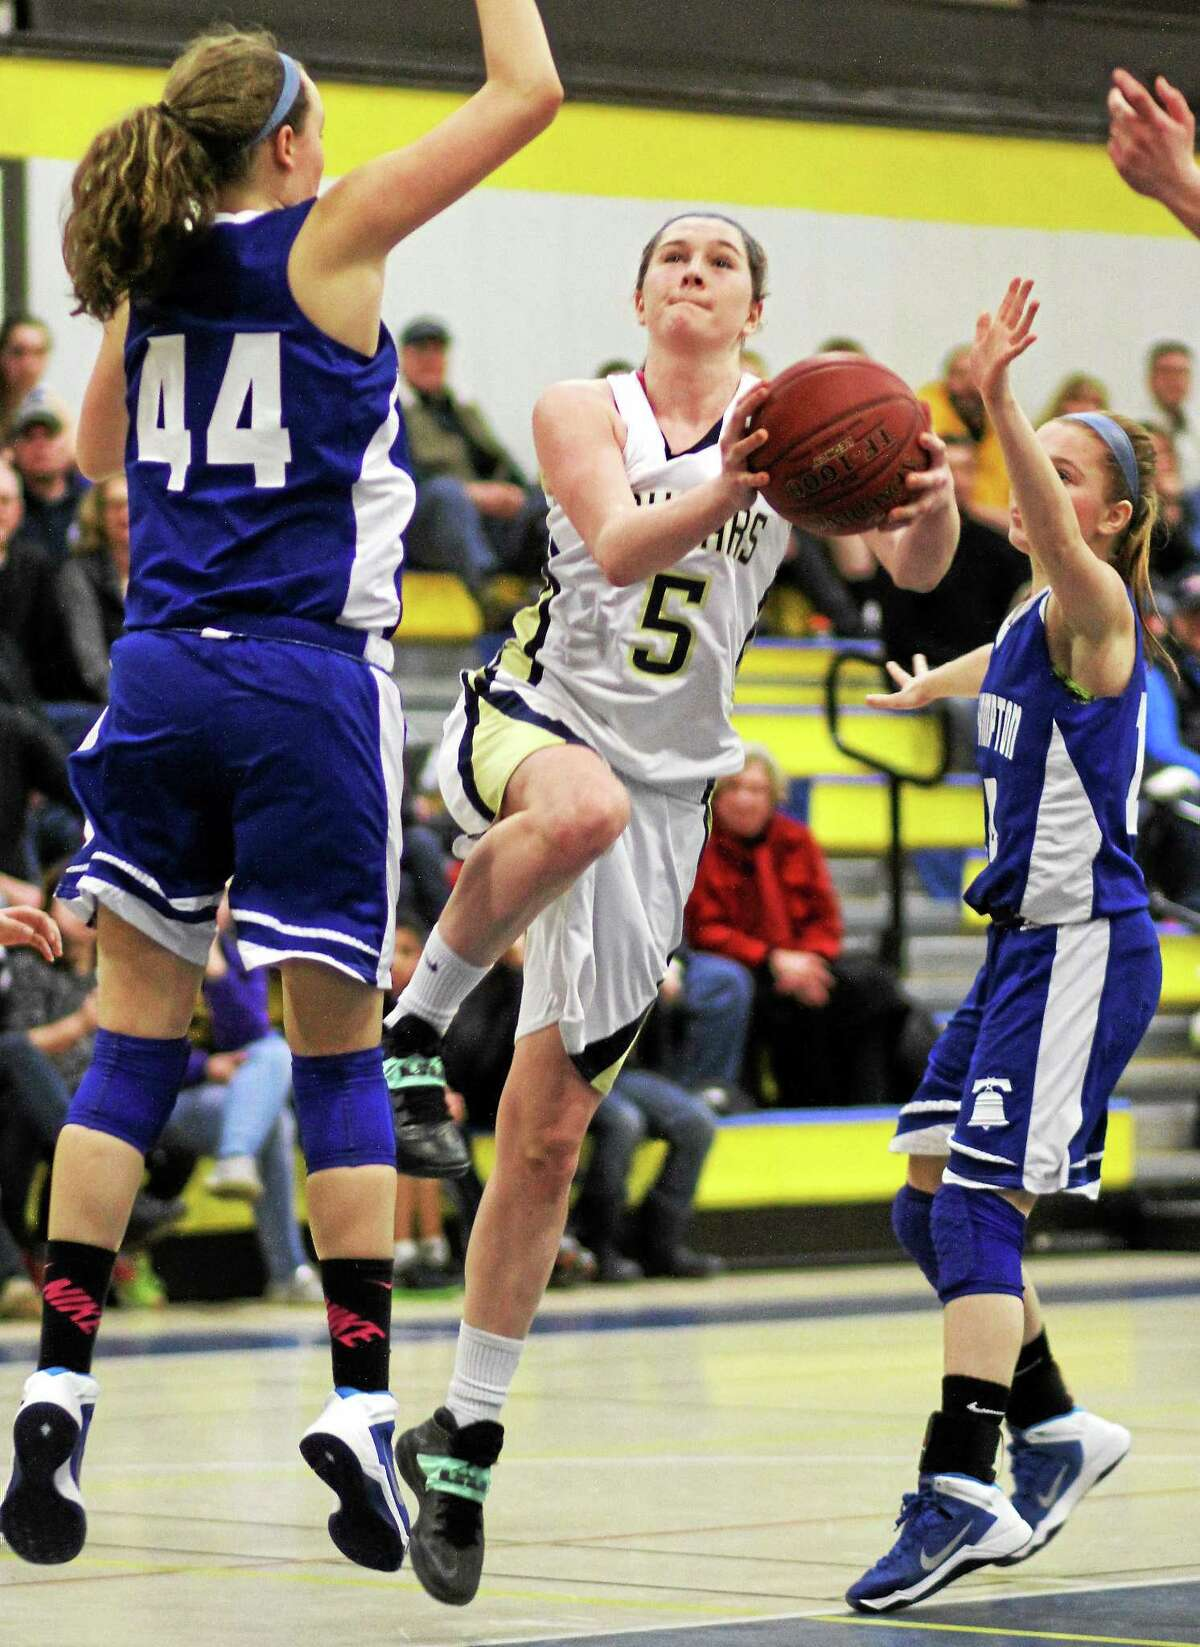 Haddam-Killingworth senior Lauren McCann (5) makes her move while East Hampton's Sarah Massie (44) looks to defend in Saturday's SLC quarterfinal contest. McCann had 17 points to lead the Cougars to Tuesday's semifinals.